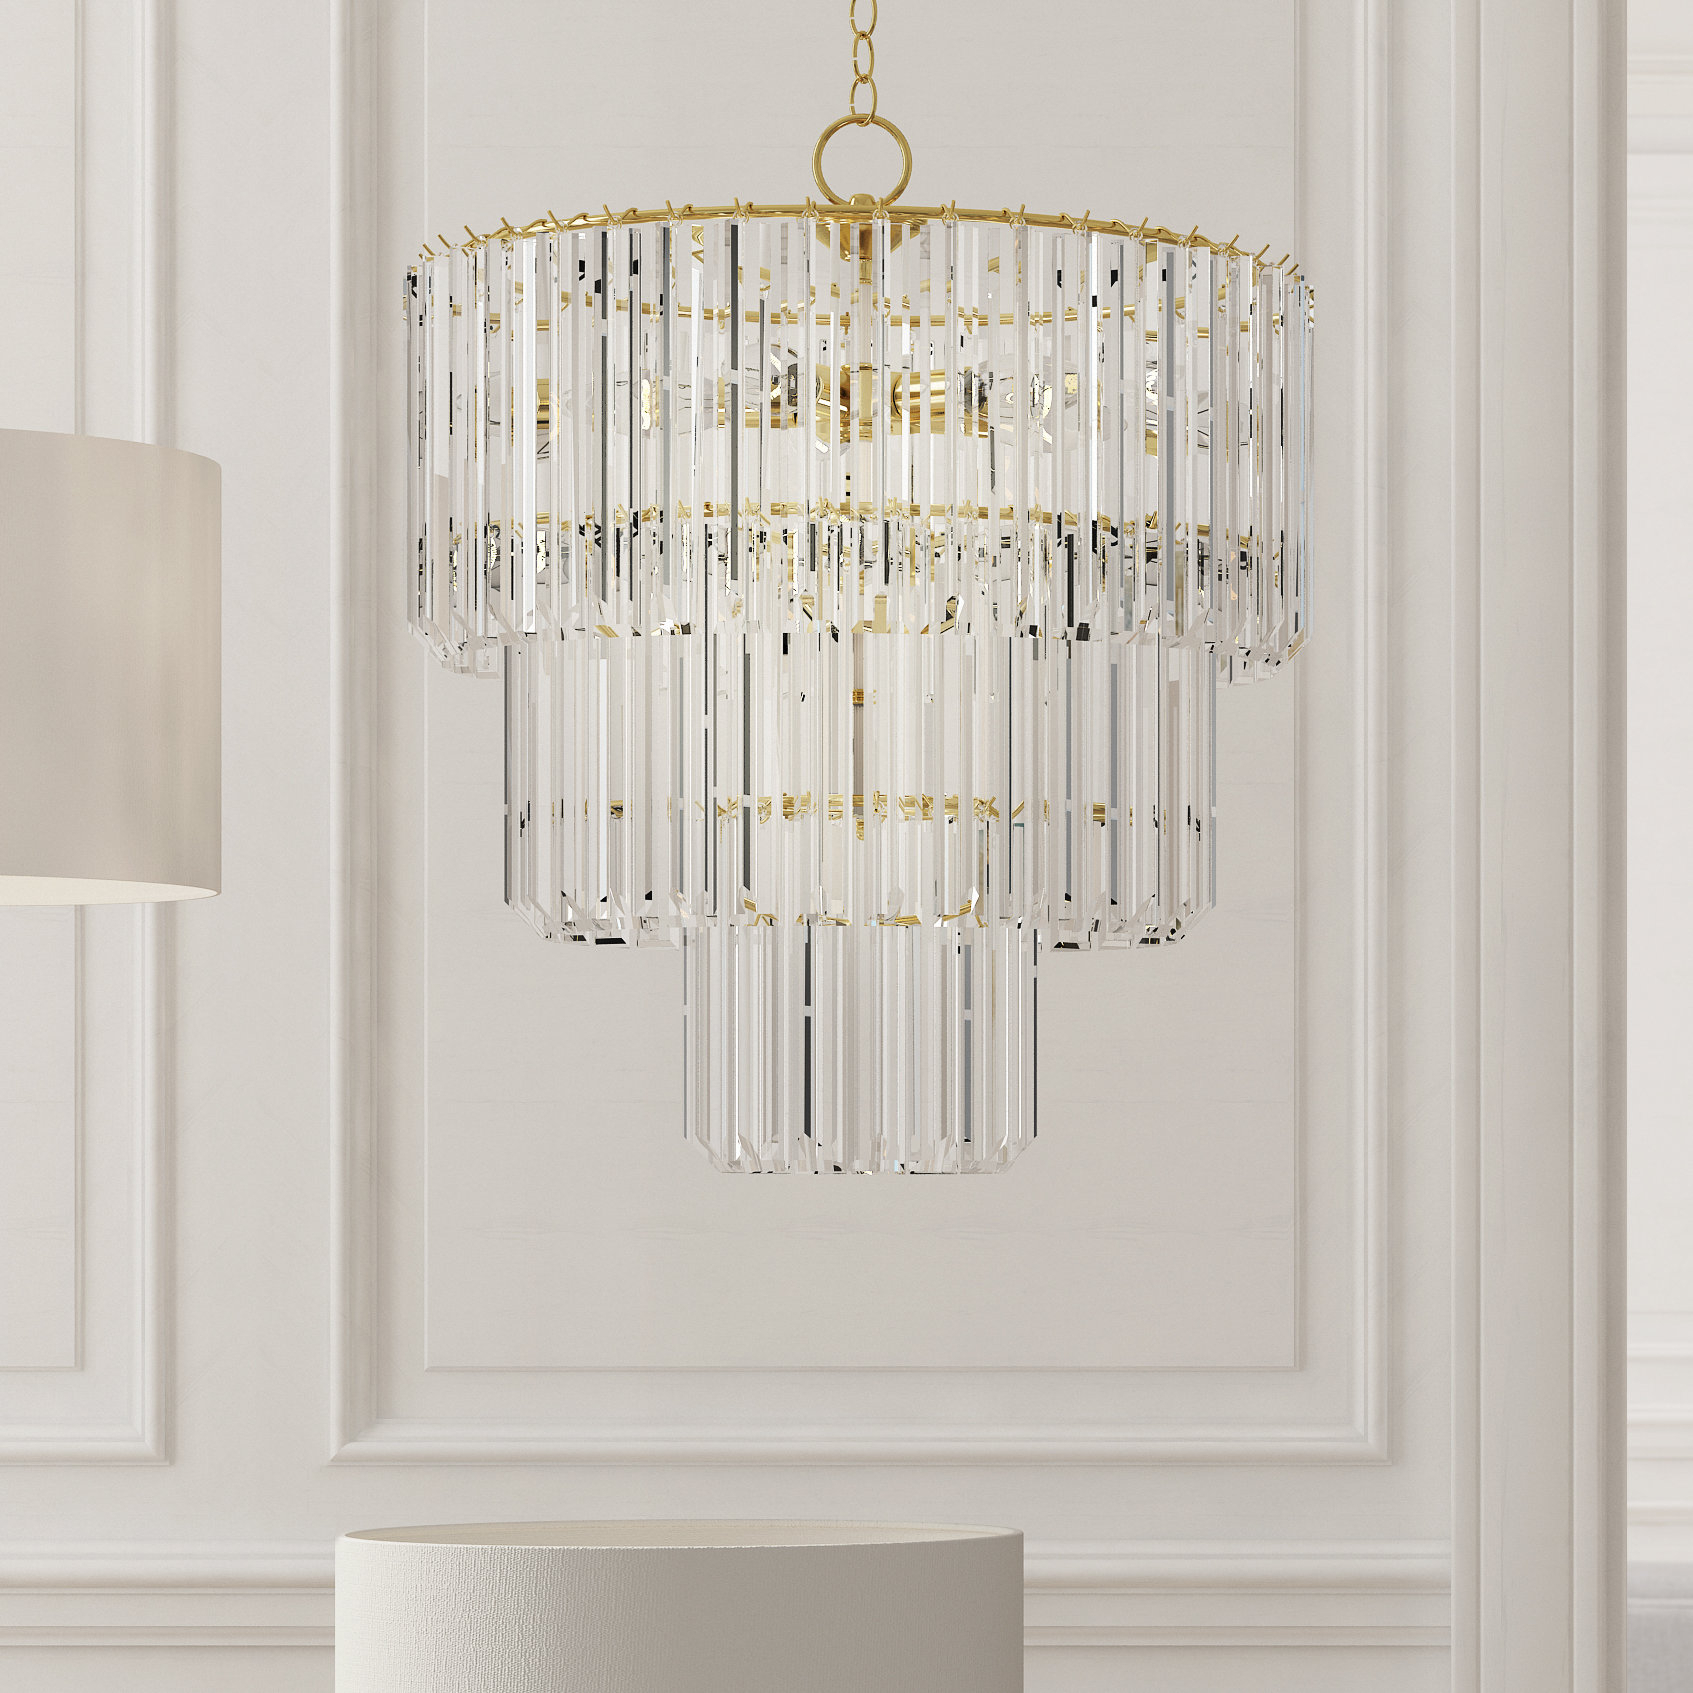 Grisella 9 Light Crystal Chandelier With Benedetto 5 Light Crystal Chandeliers (View 10 of 30)